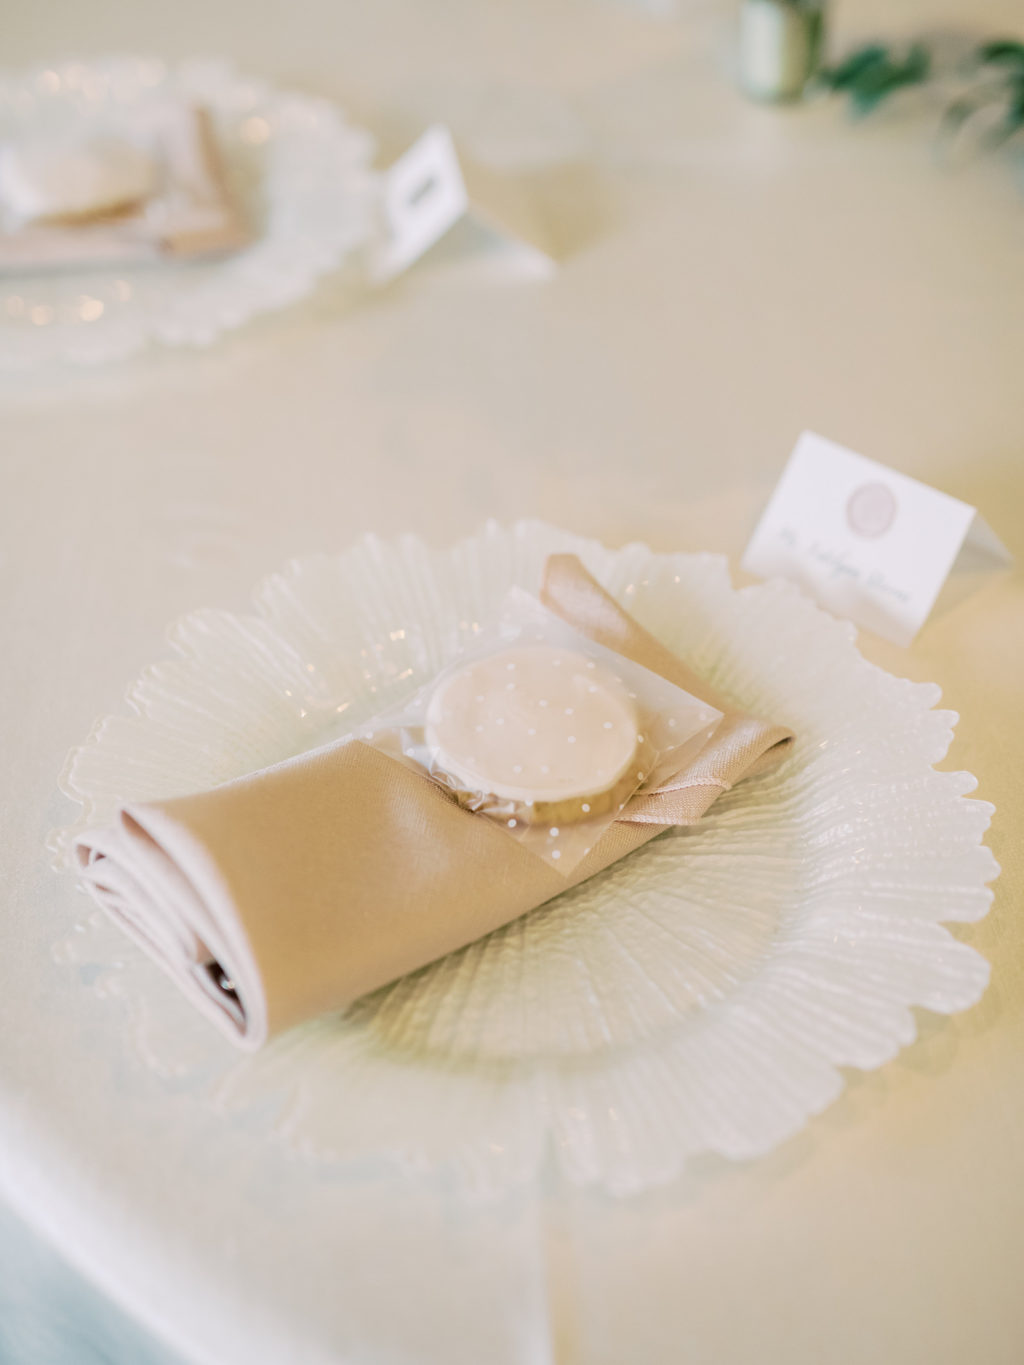 Timeless Romantic Wedding Reception Decor, White Decorative Plate, Cooke Wedding Favor | Tampa Bay Wedding Planner Special Moments Event Planning | Wedding Rentals Kate Ryan Event Rentals